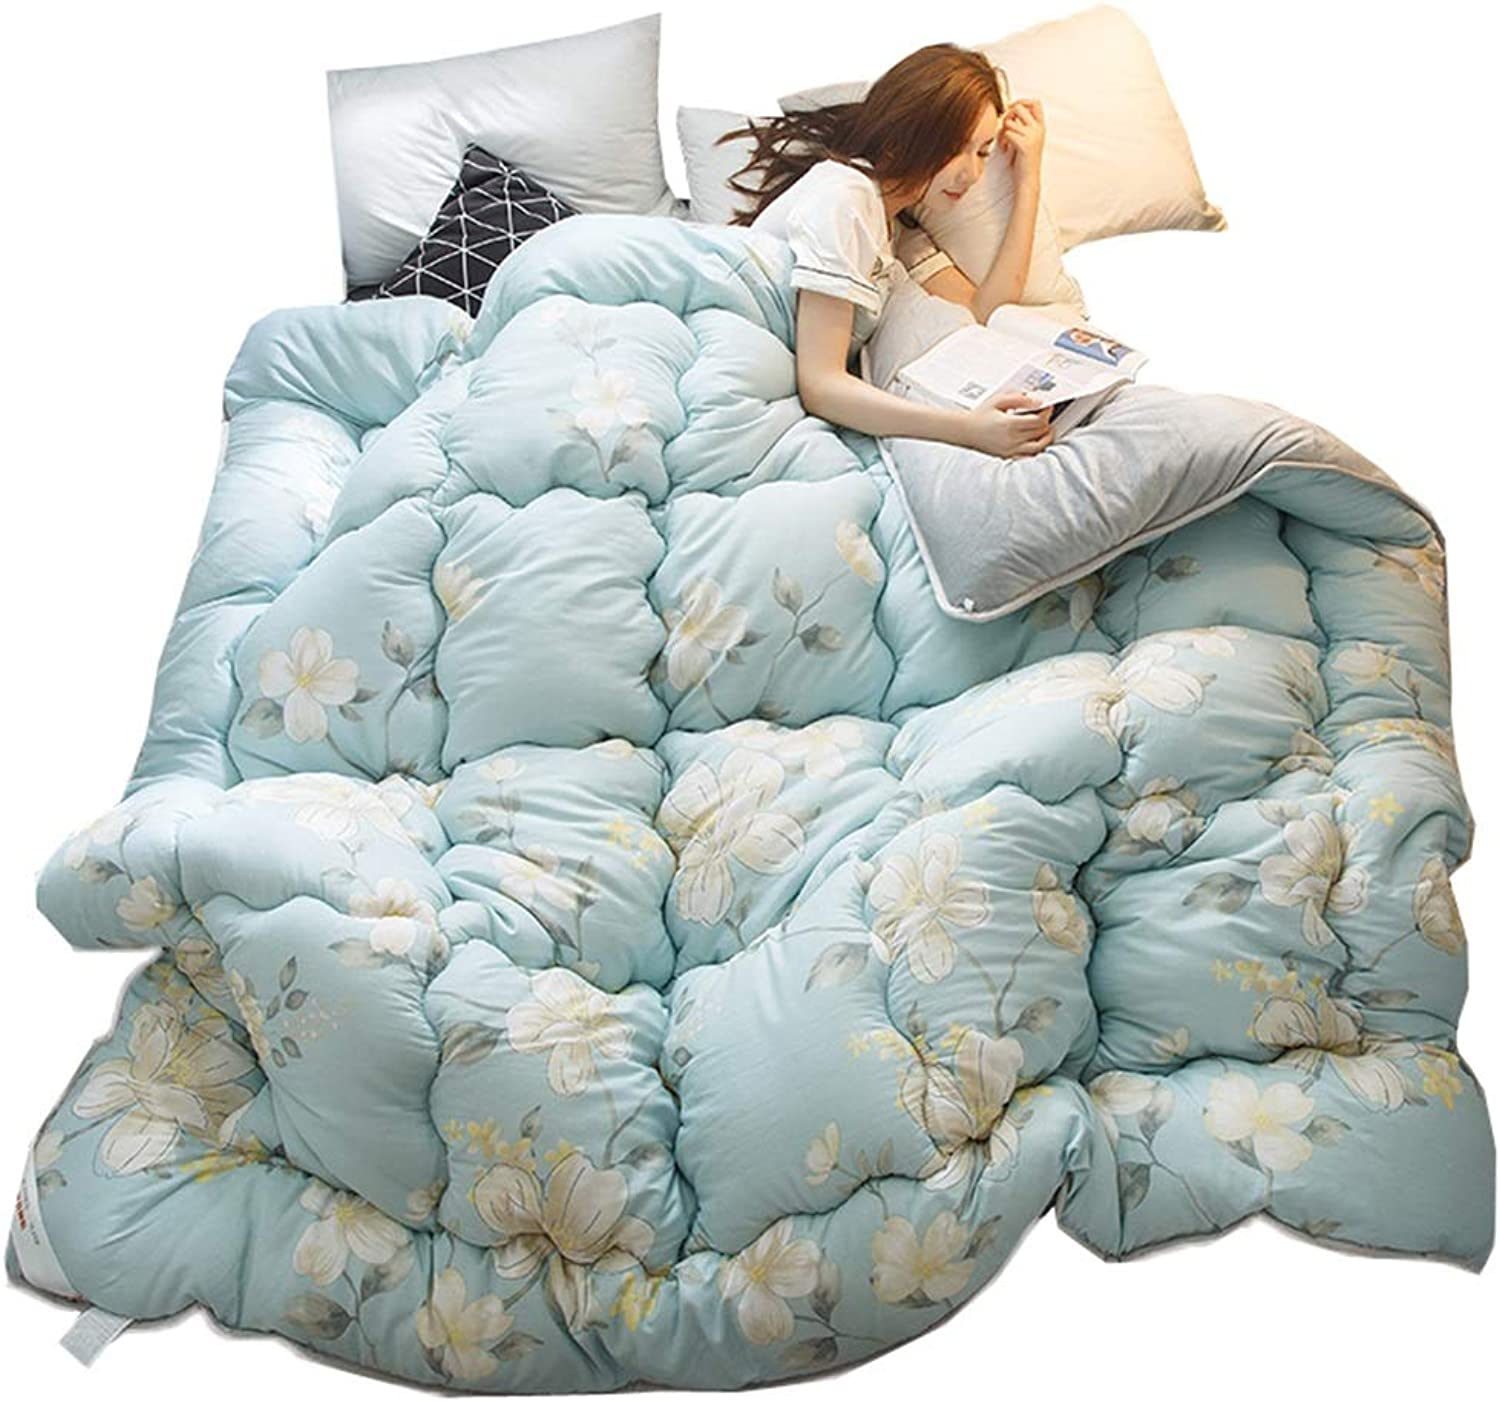 Quilted Comforter Corner Tabs Double Quilt Four Seasons Thicken Warm Soft All Season Single Double Quilt (Size   180cmx220cm3kg)